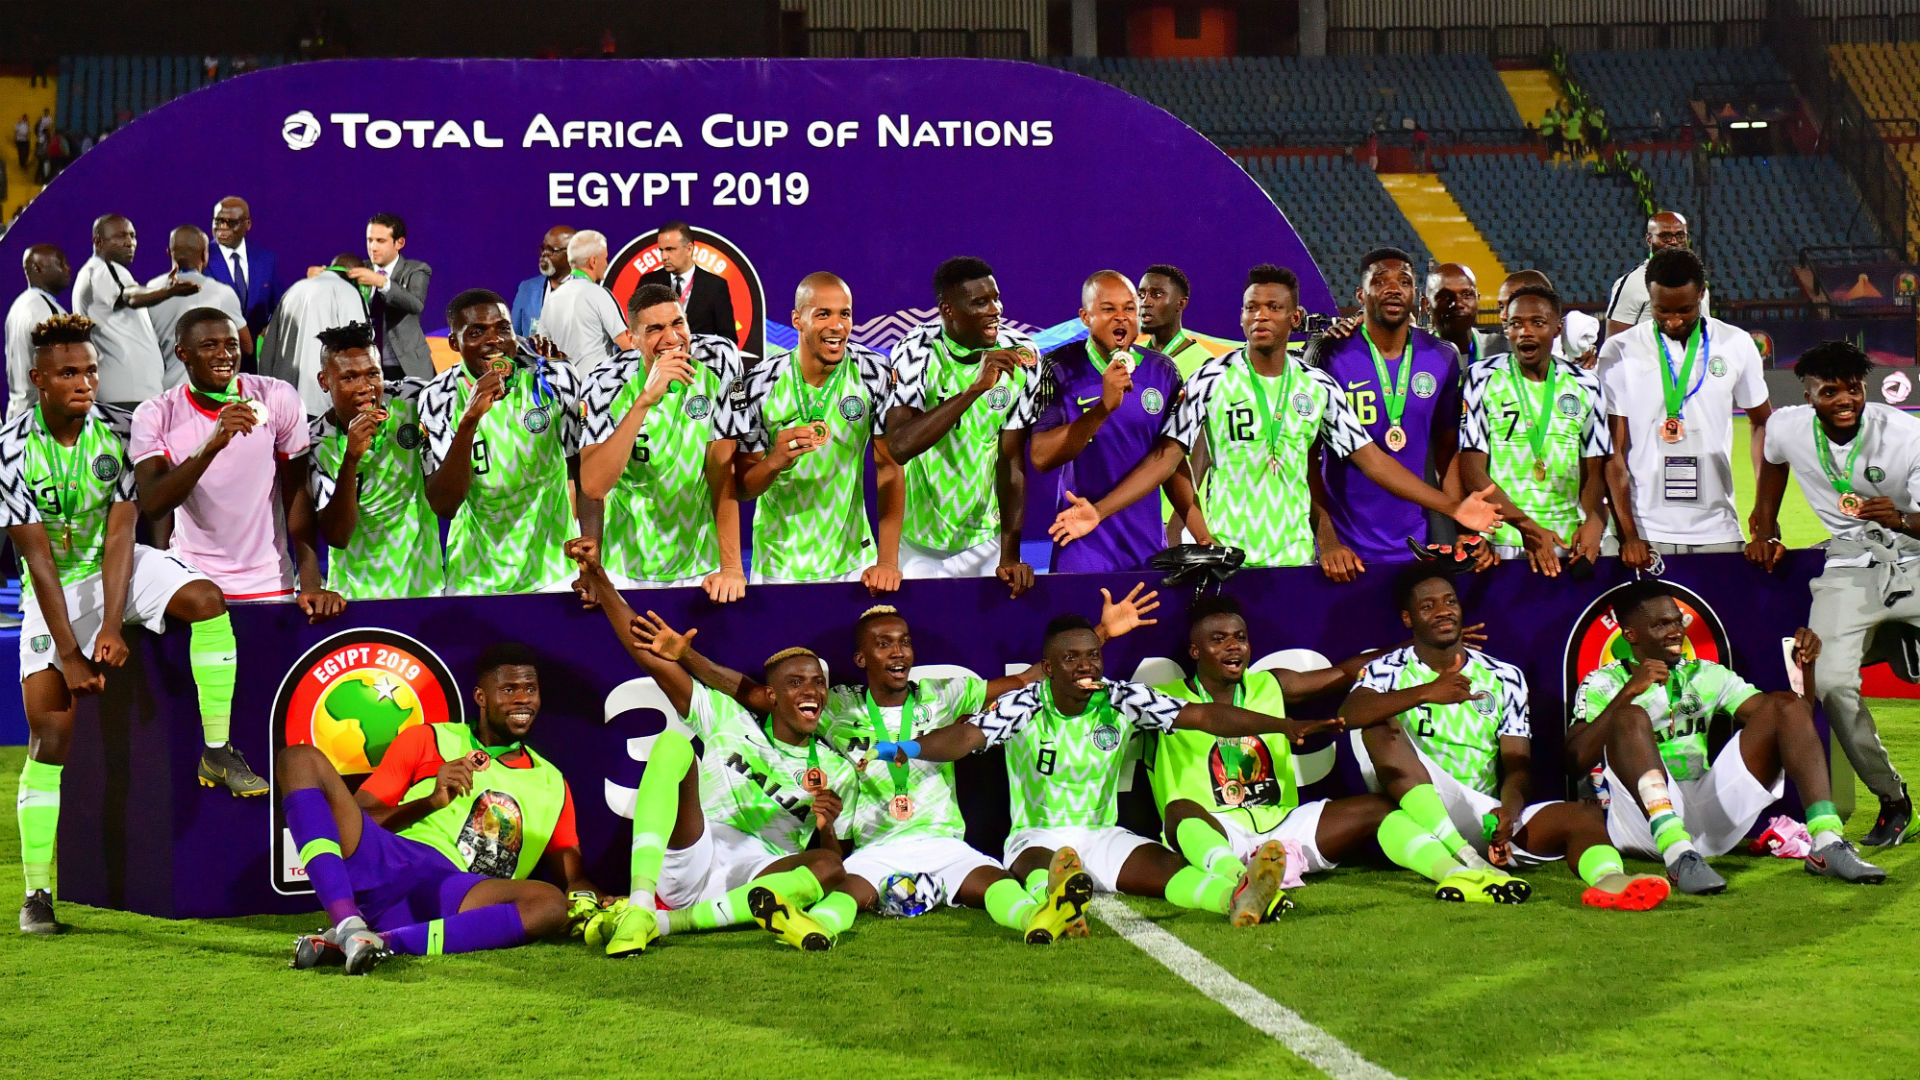 EXTRA TIME: Watch Super Eagles arrive back in Nigeria after Afcon 2019